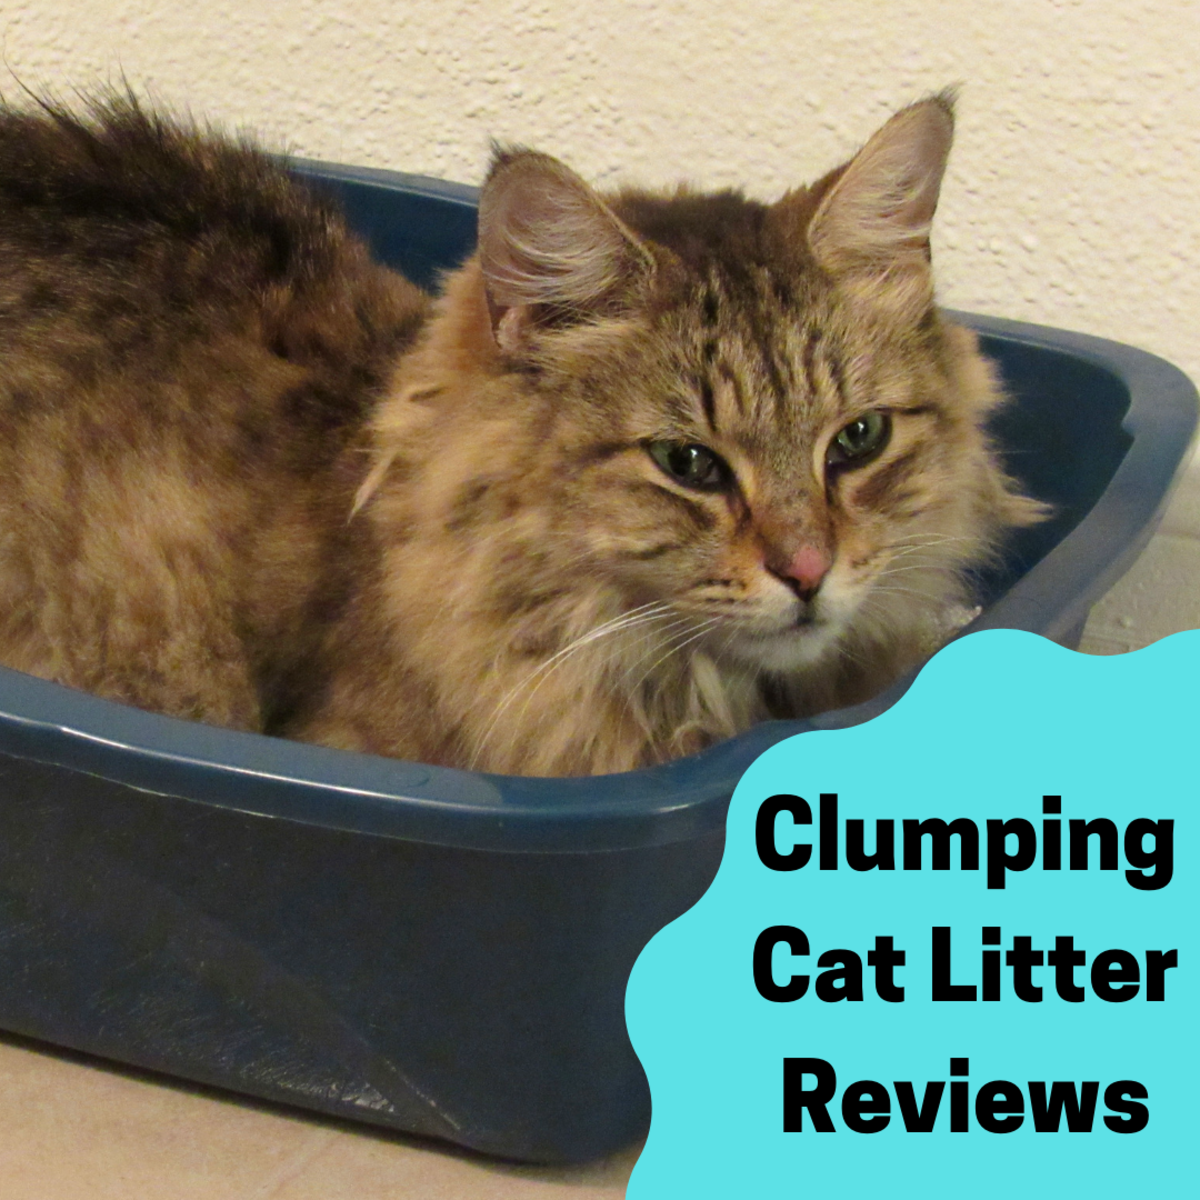 Cat Litter Reviews: Brand Reviews and the Best Clumping Litter